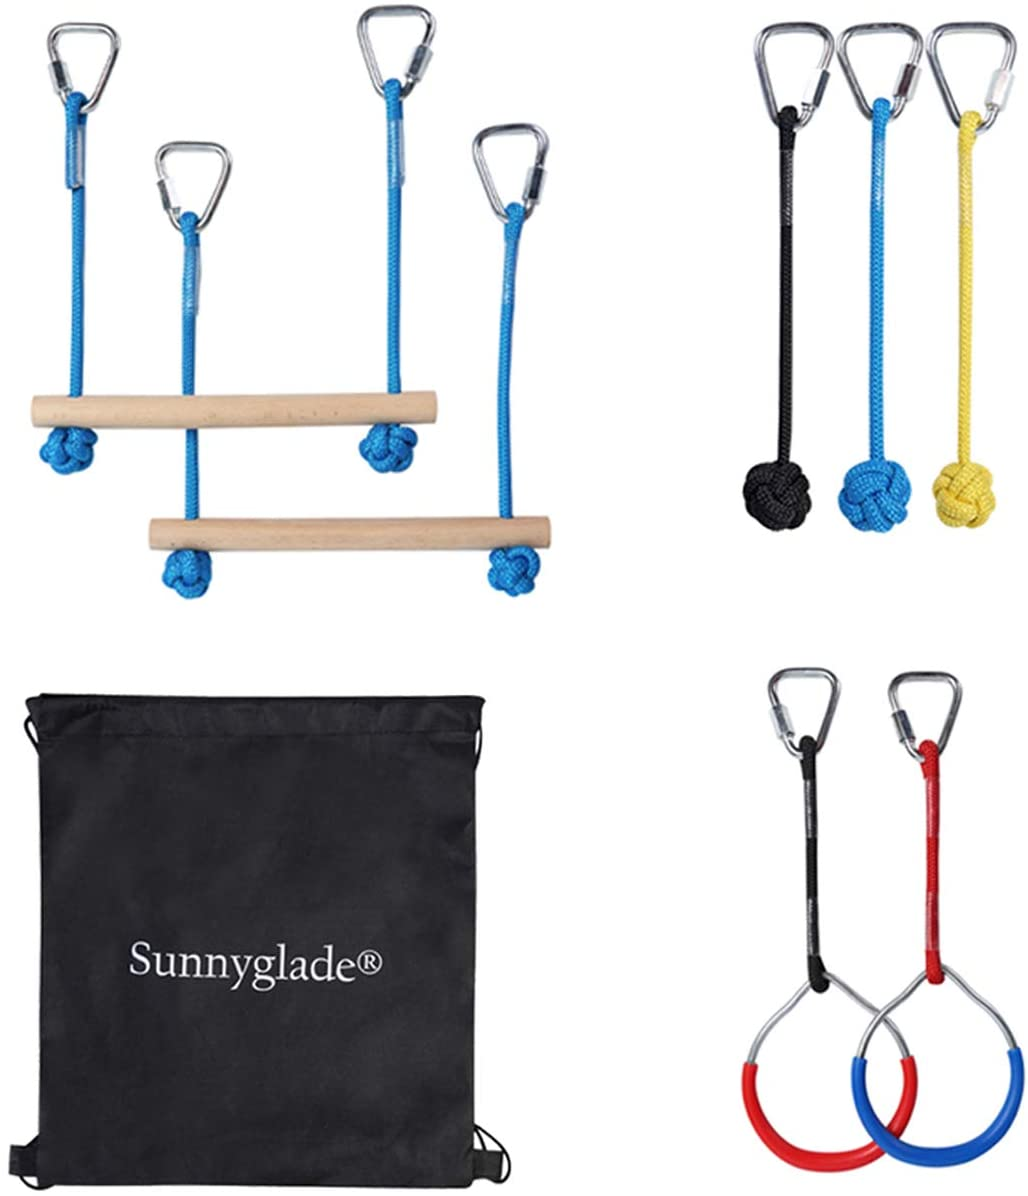 Sunnyglade Backyard Ninja Line Accessories Hanging Obstacle Course/Slackers Ninja Line Accessories for Kids - 2 Bars, 3 Fists & 2Rings